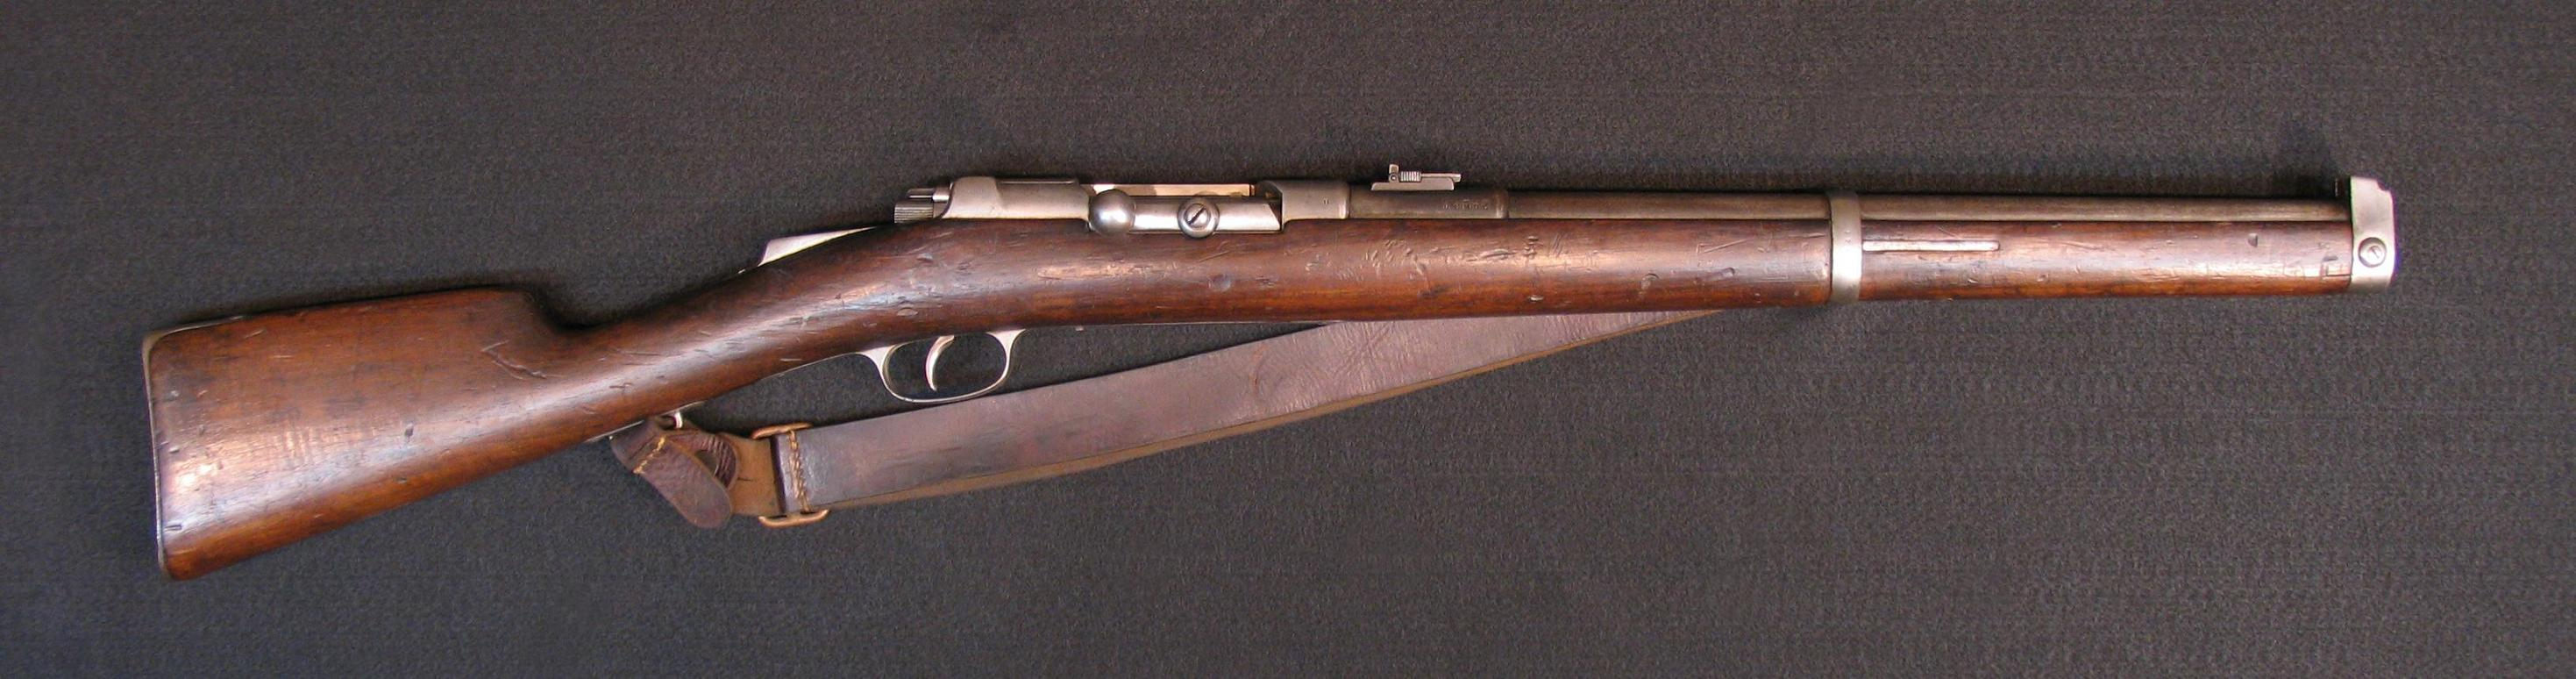 Serbian Model 1884 Cavalry Carbine 1R.JPG